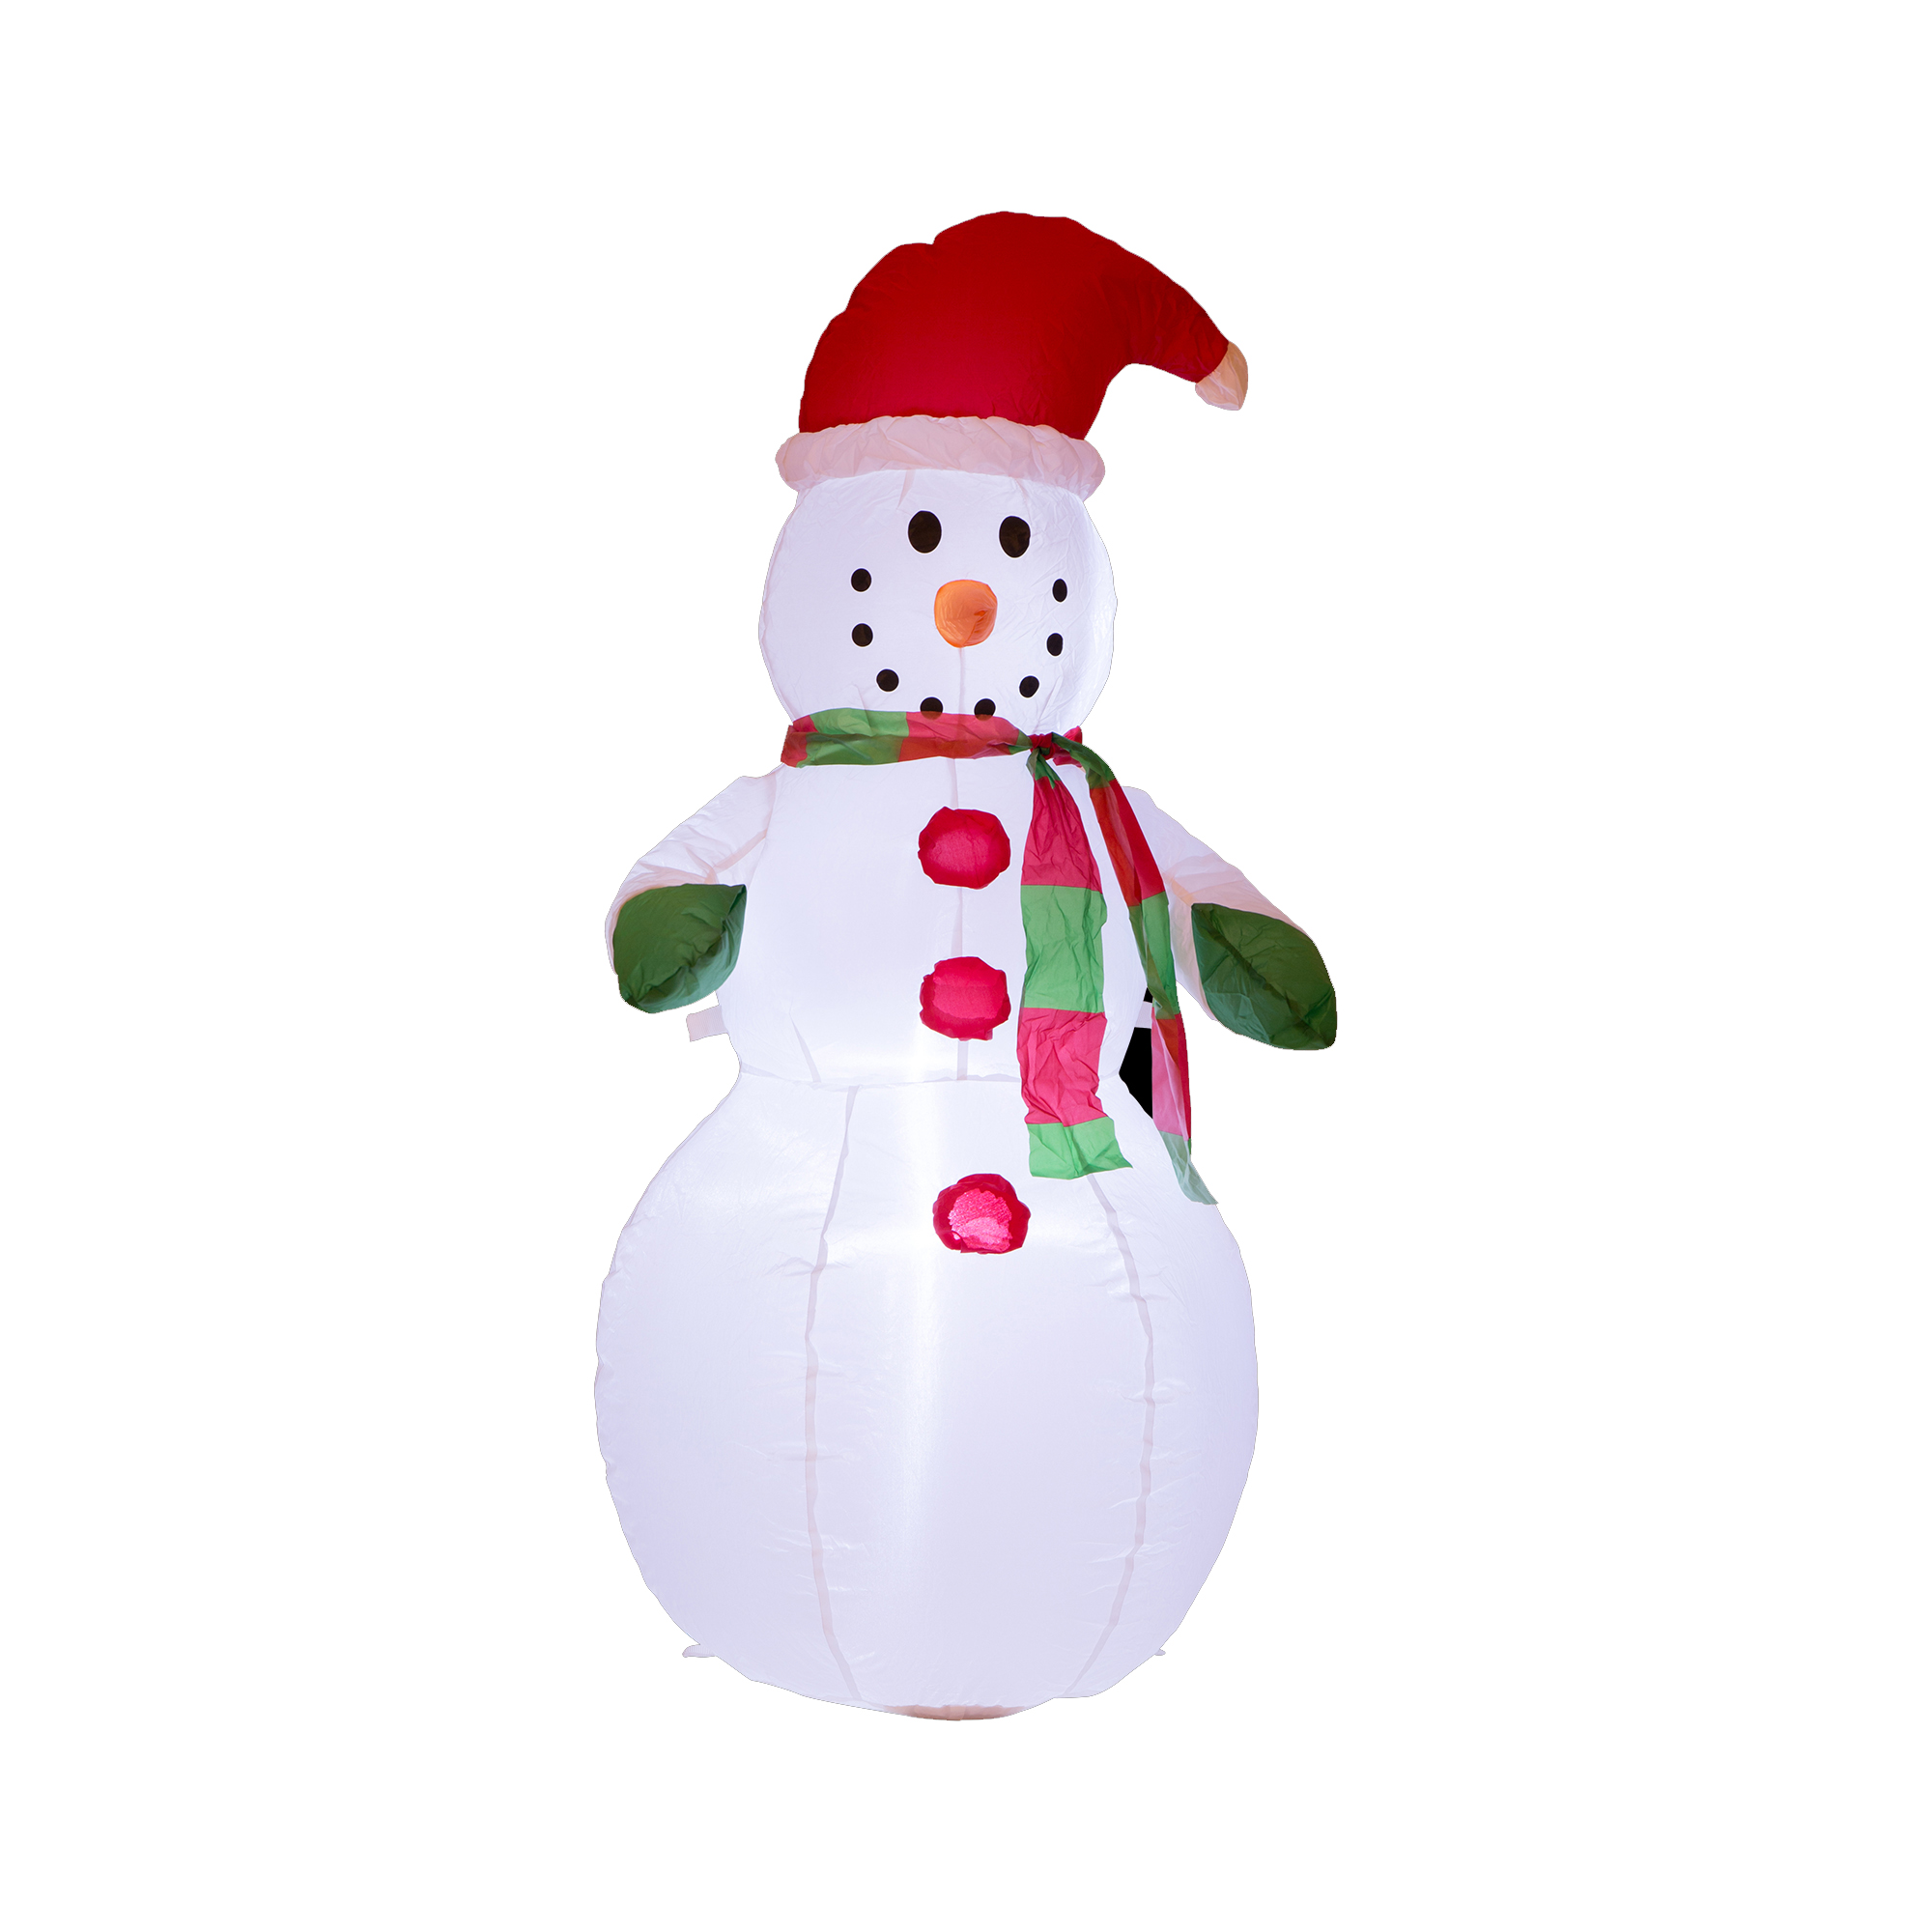 Glitzhome 3.94FT H Outdoor Winter New Year Christmas Lighted Inflatable Snowman Décor Decorations